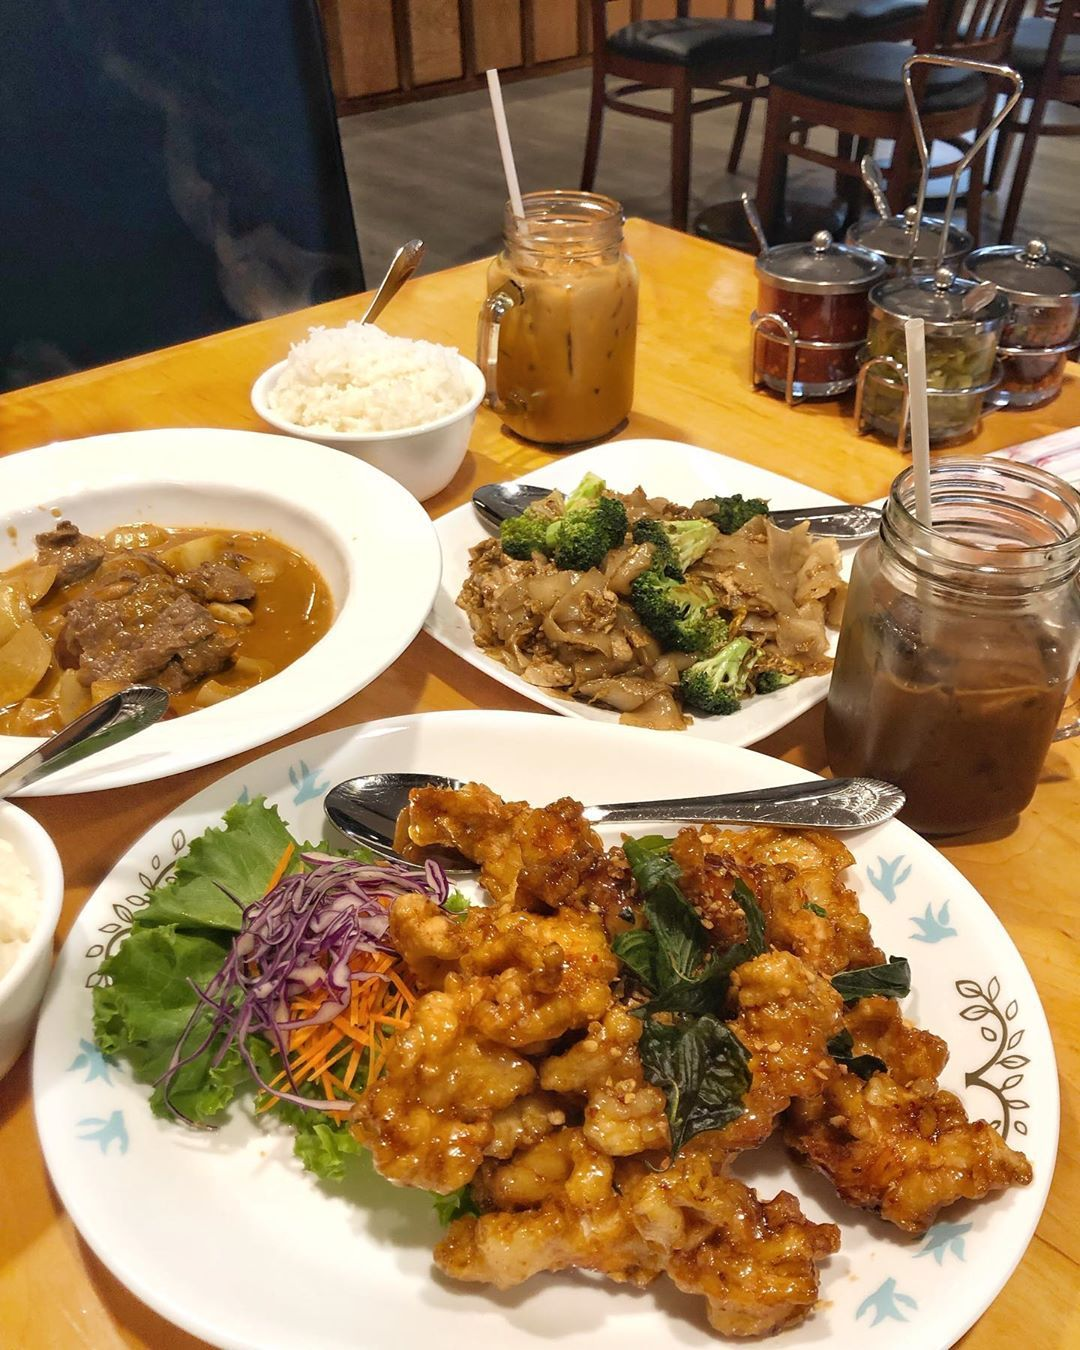 🥡KHAO SAN THAI🥡 . . . My thai friend recommended this Thai restuarant to me and everyone was so delicious!! We got the crispy garlic chicken, massamum curry with beef, pad see ew and thai tea/coffee! . This place has become my new favorite place for thai food!